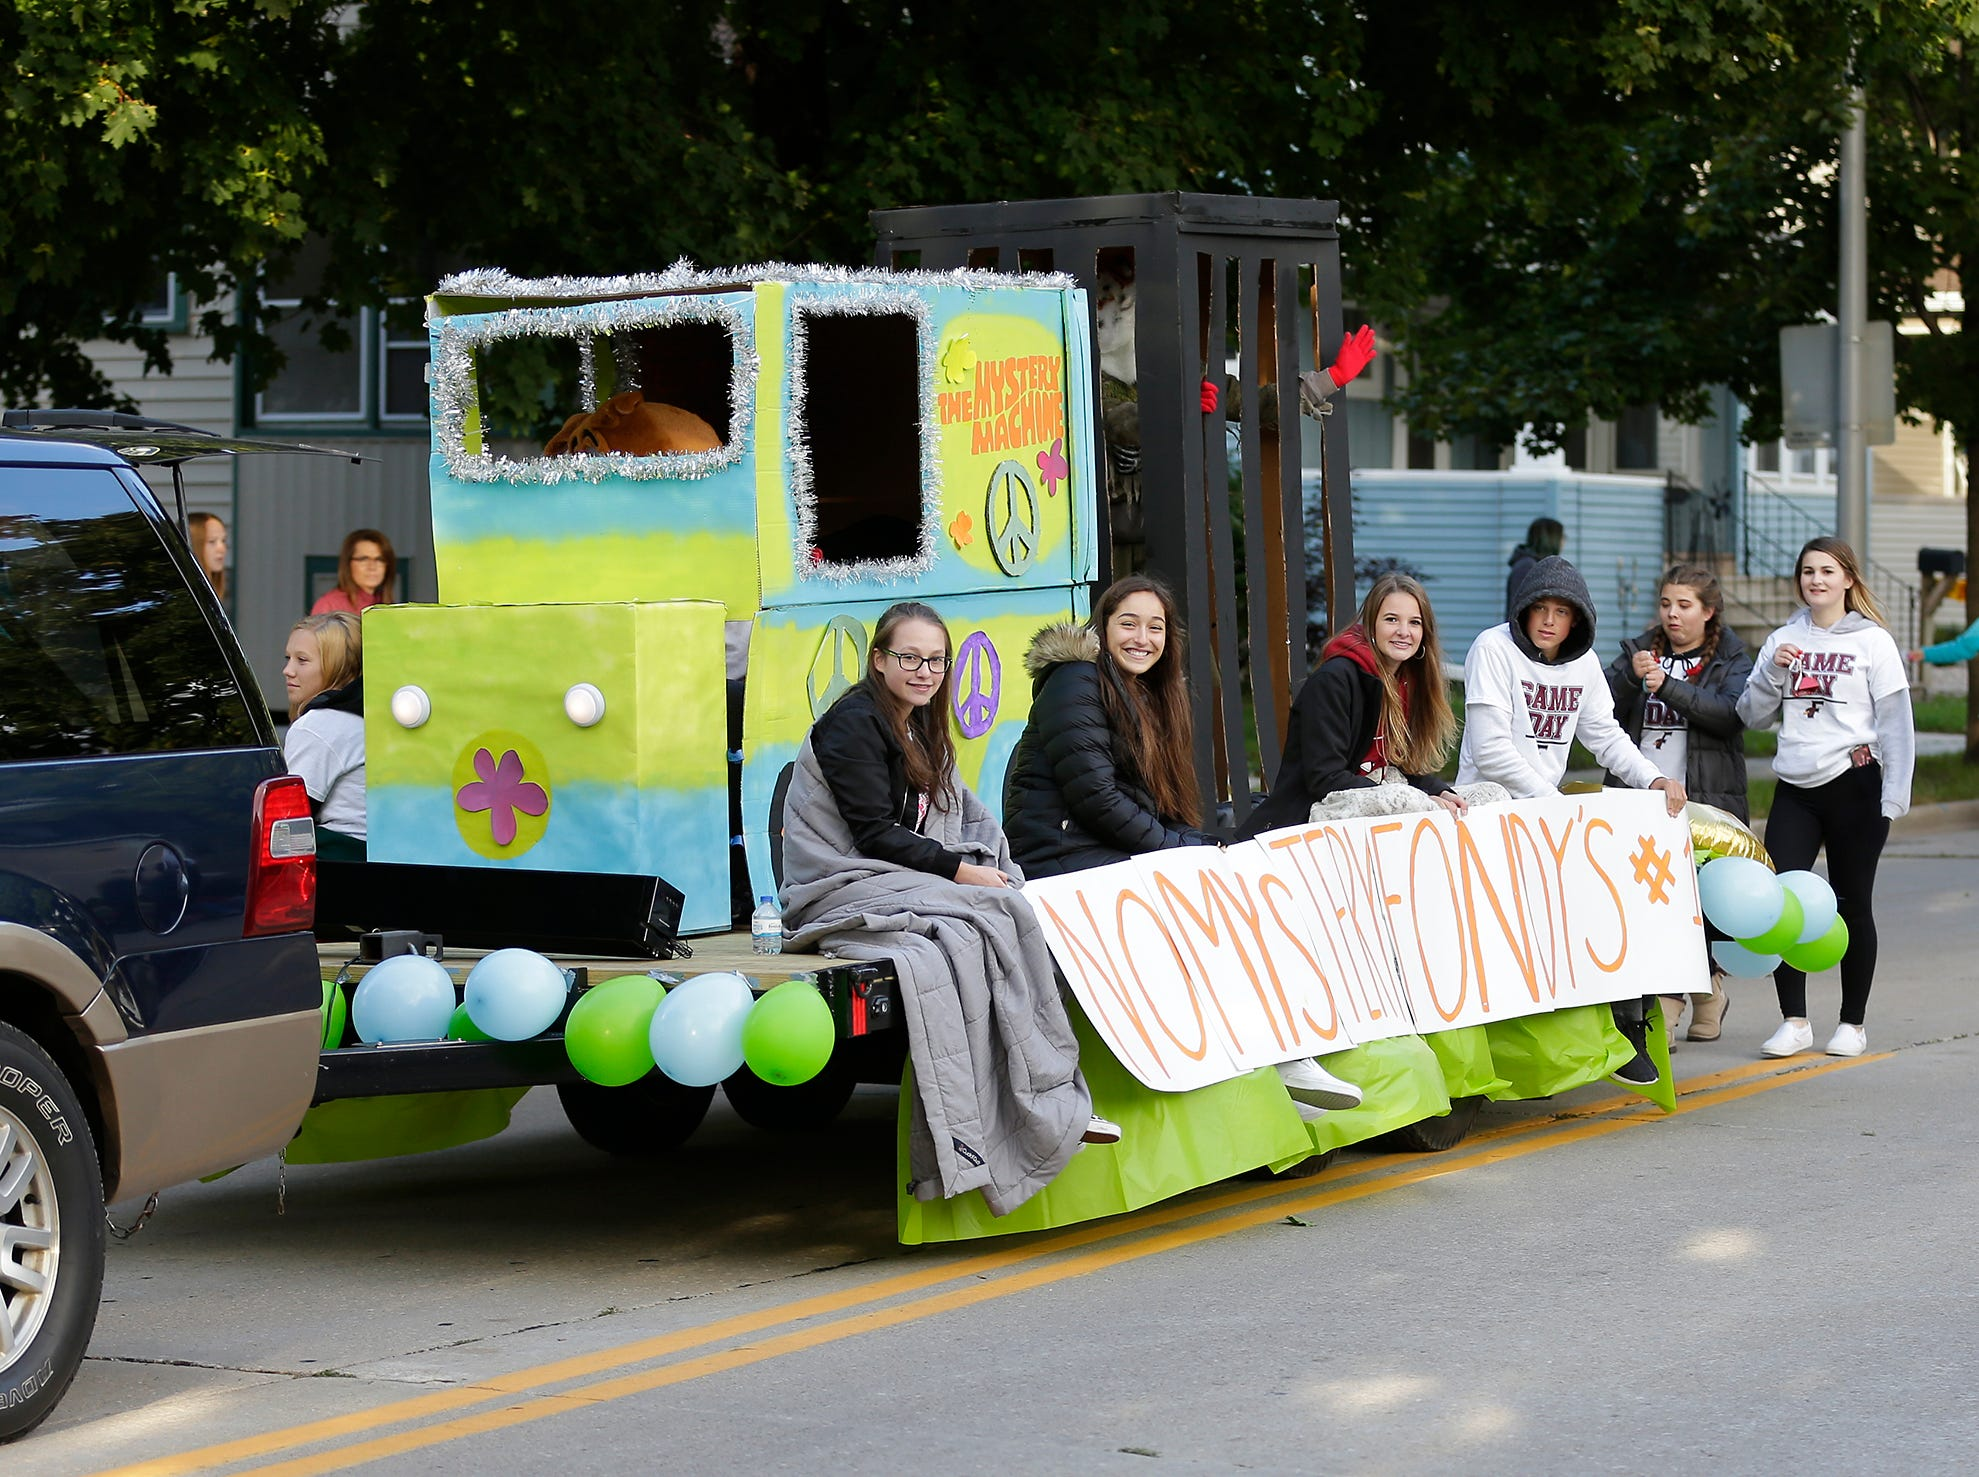 The Fond du Lac High School class of 2021 rode in the Fond du Lac High School football homecoming parade Friday, Sept. 28, 2018, which went down portions of Martin Avenue and Ninth Street in Fond du Lac, Wisconsin.